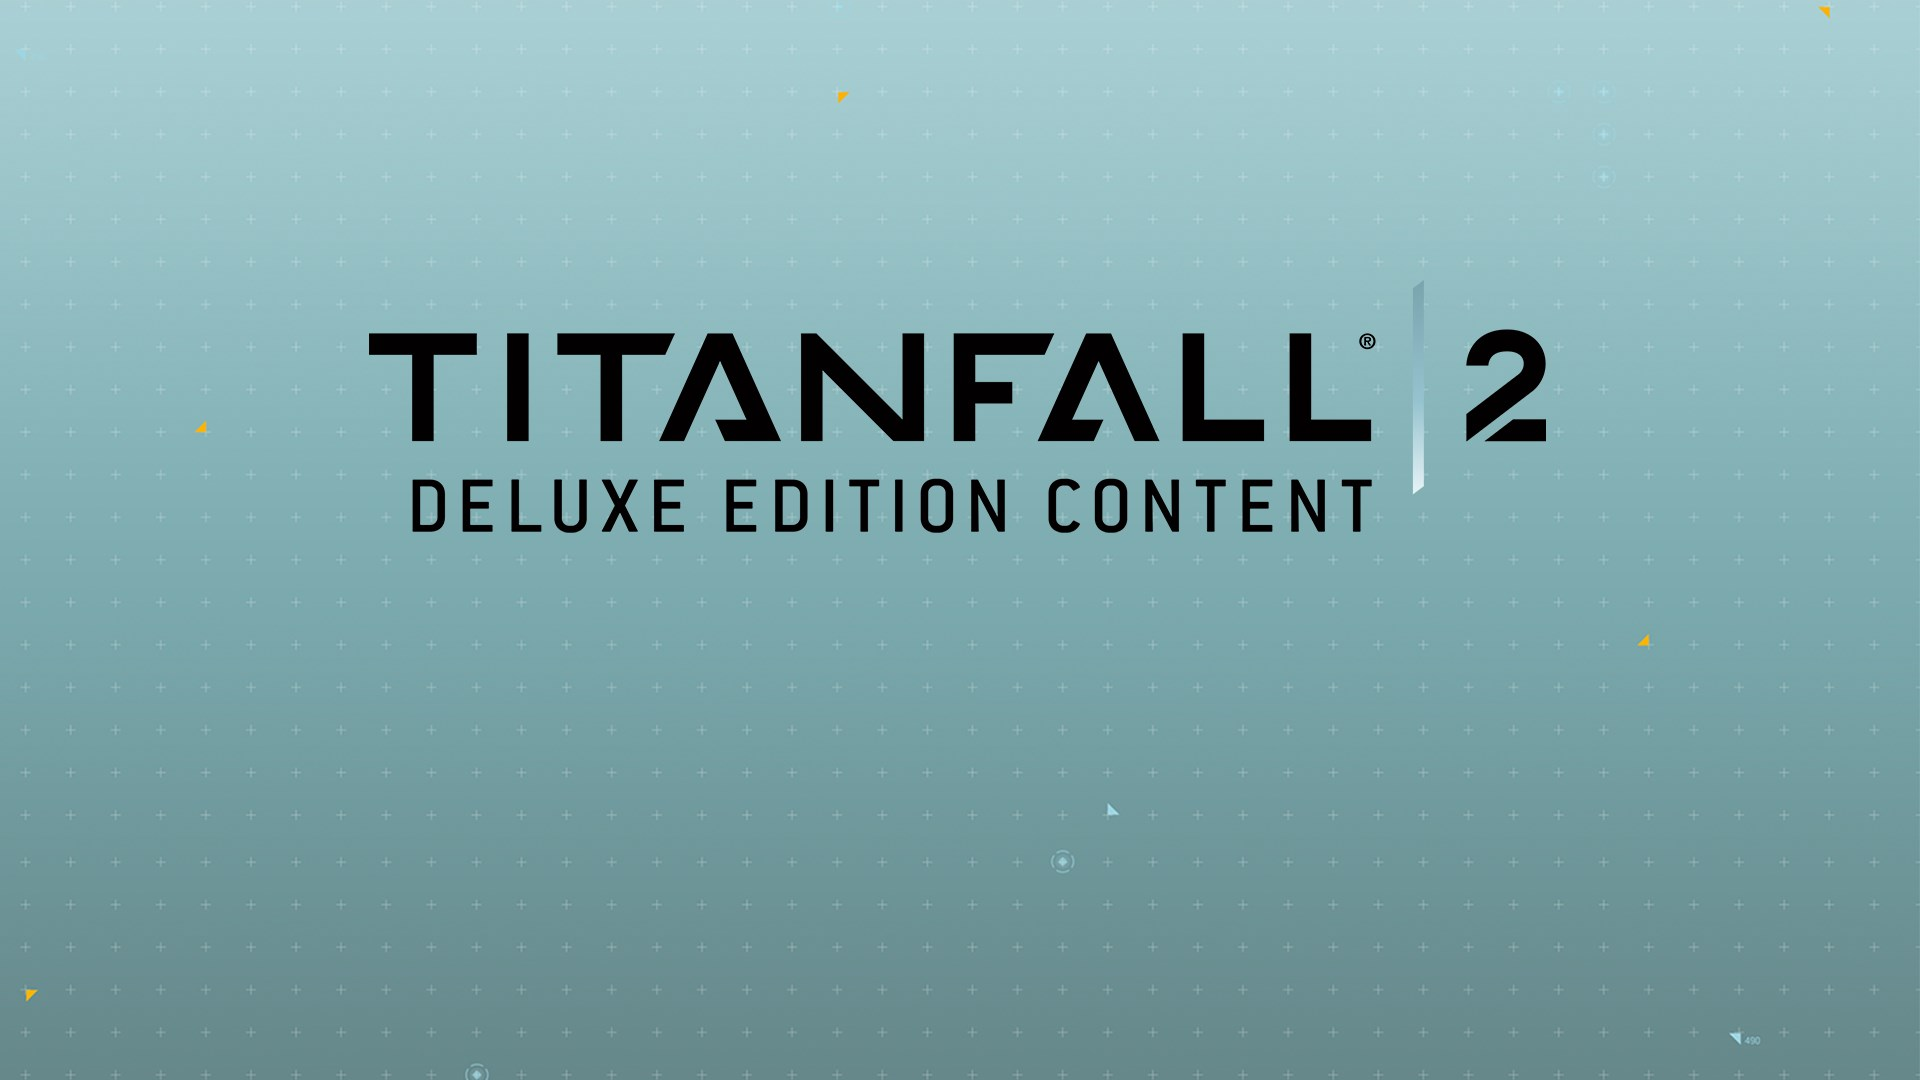 Titanfall™ 2 Deluxe Edition Content